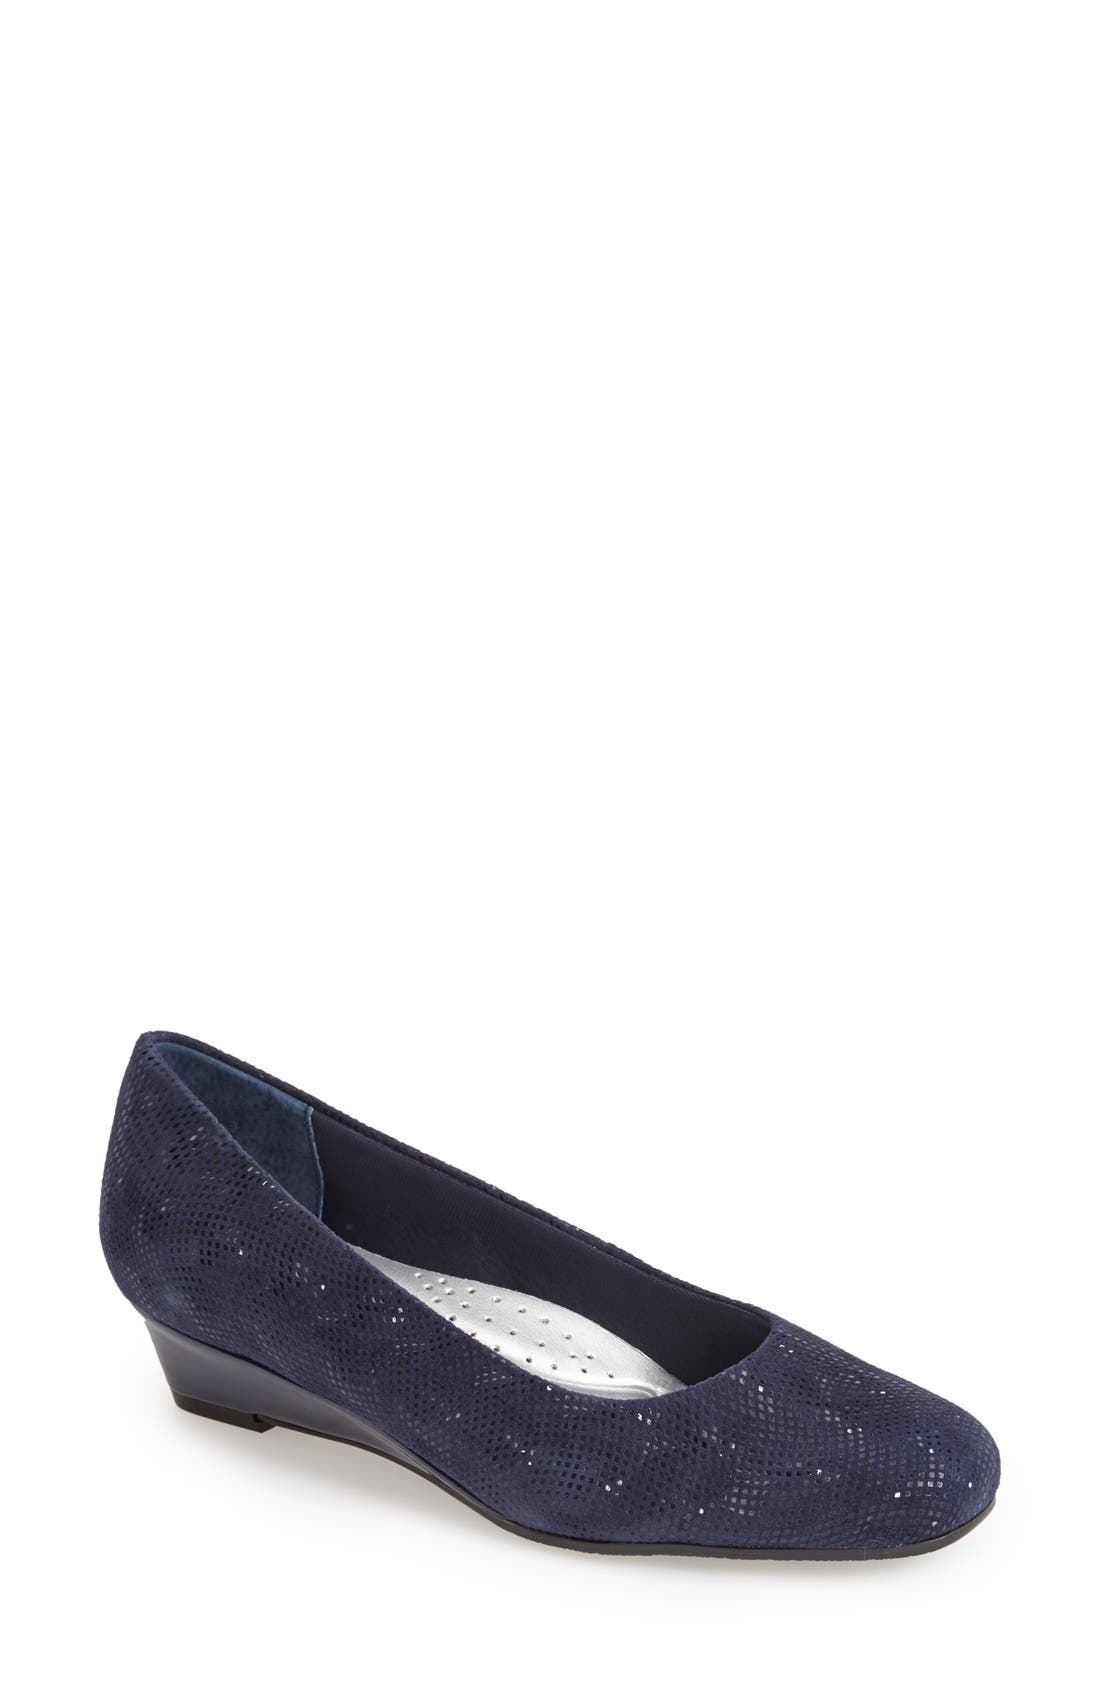 'Lauren' Pump,                         Main,                         color, Navy 3D